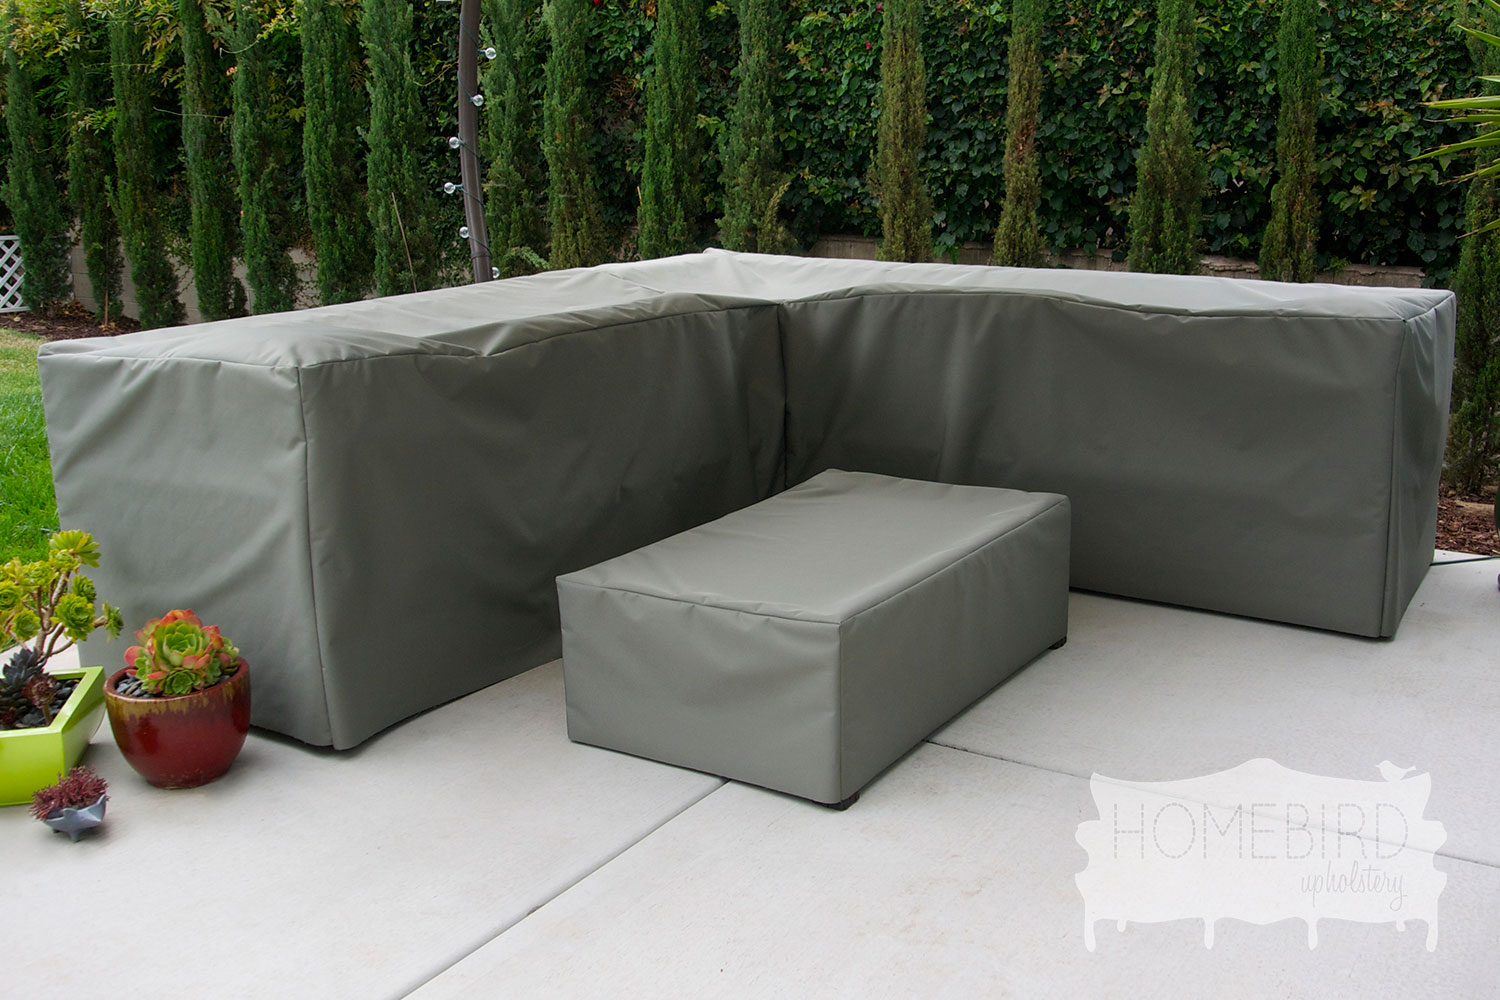 custom order patio furniture covers lucky little With custom outdoor furniture covers uk